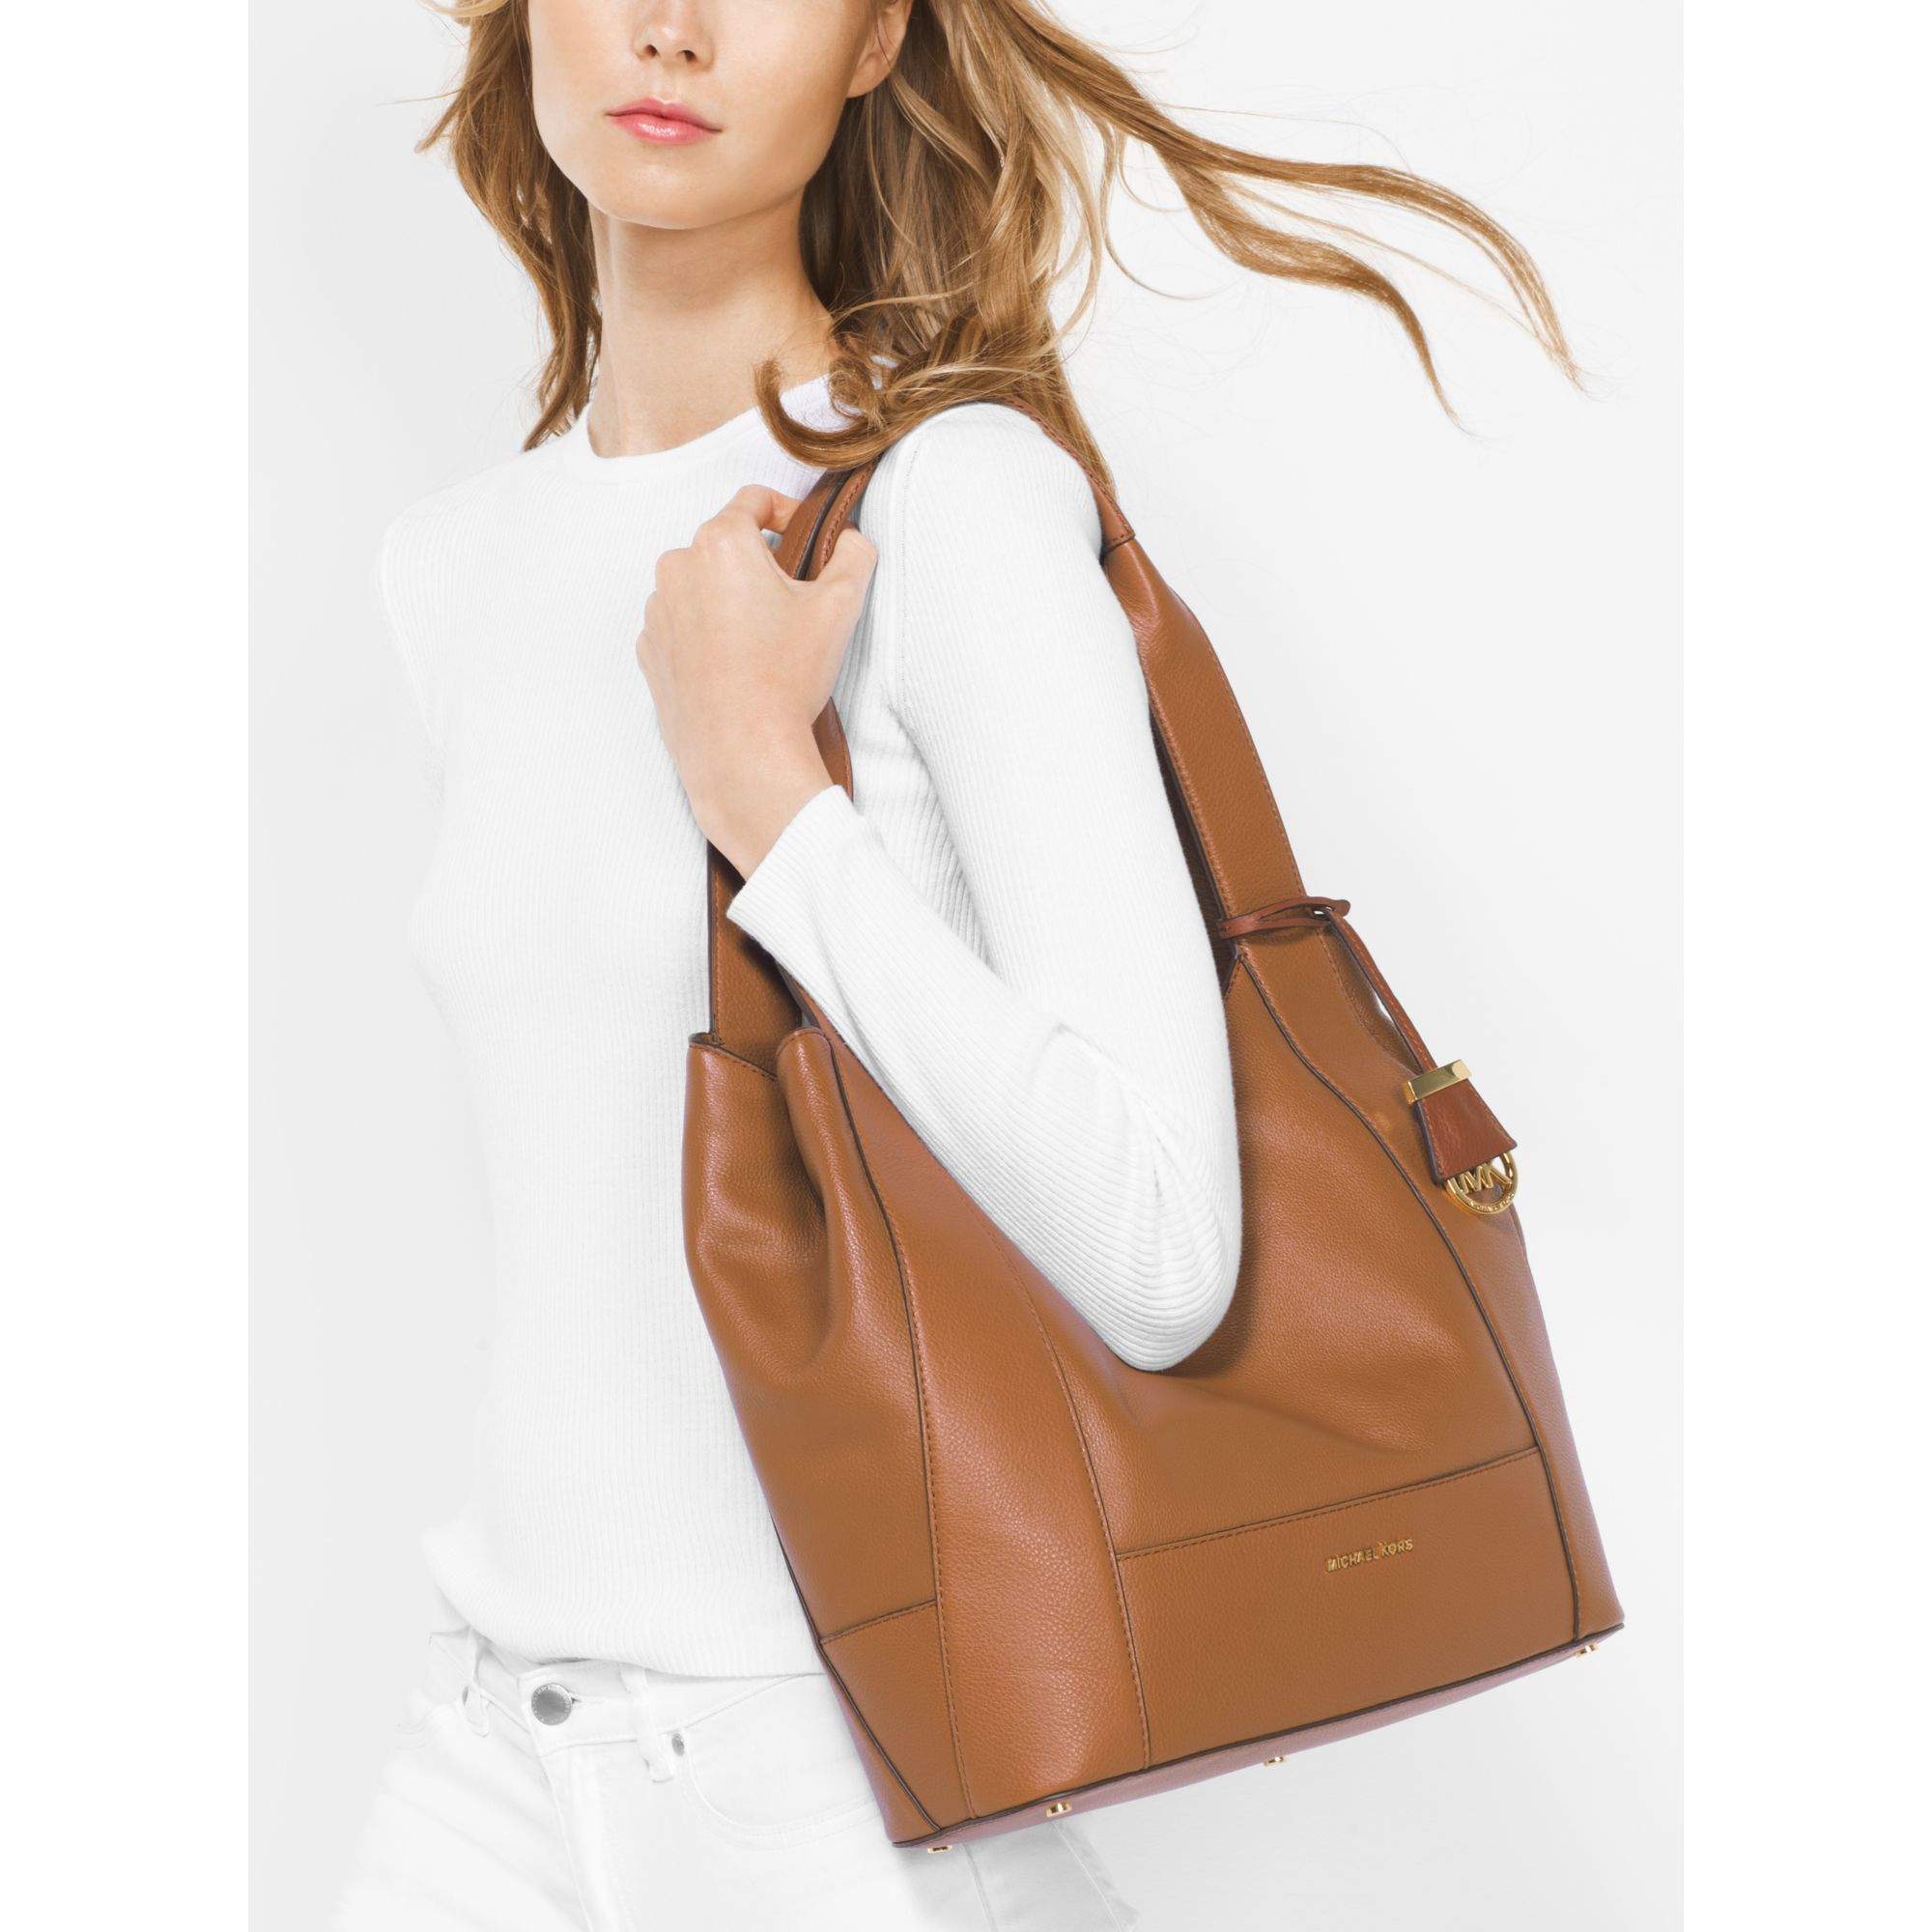 8d564da20ae3d5 Michael Kors Marlon Large Leather Shoulder Tote in Brown - Lyst